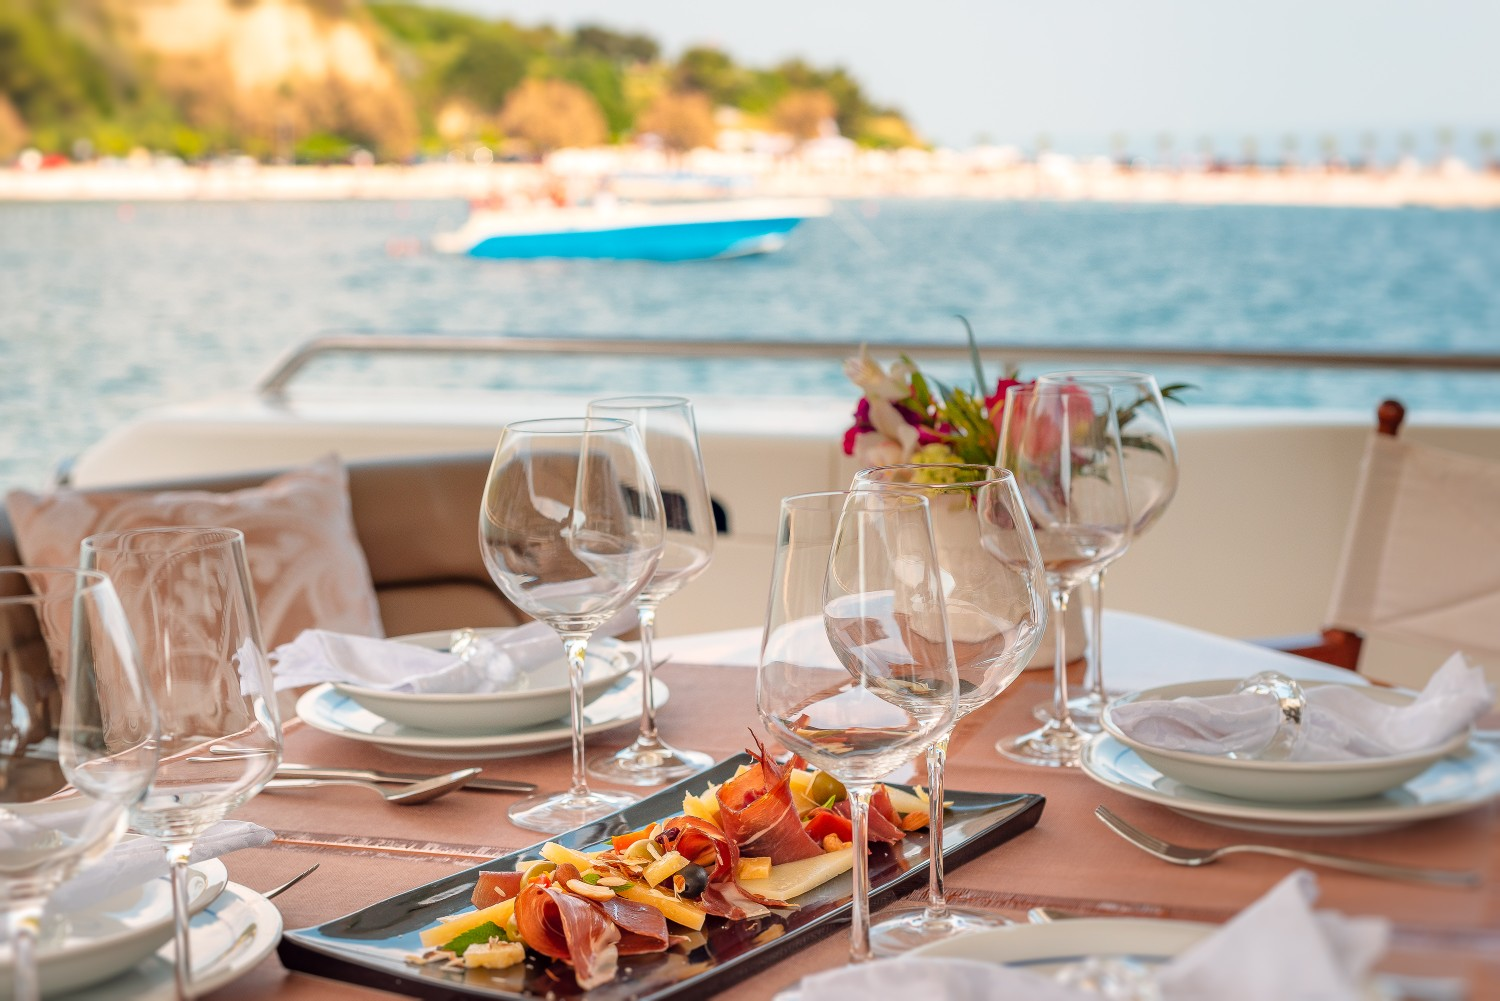 Ferretti730_Marino_table setting